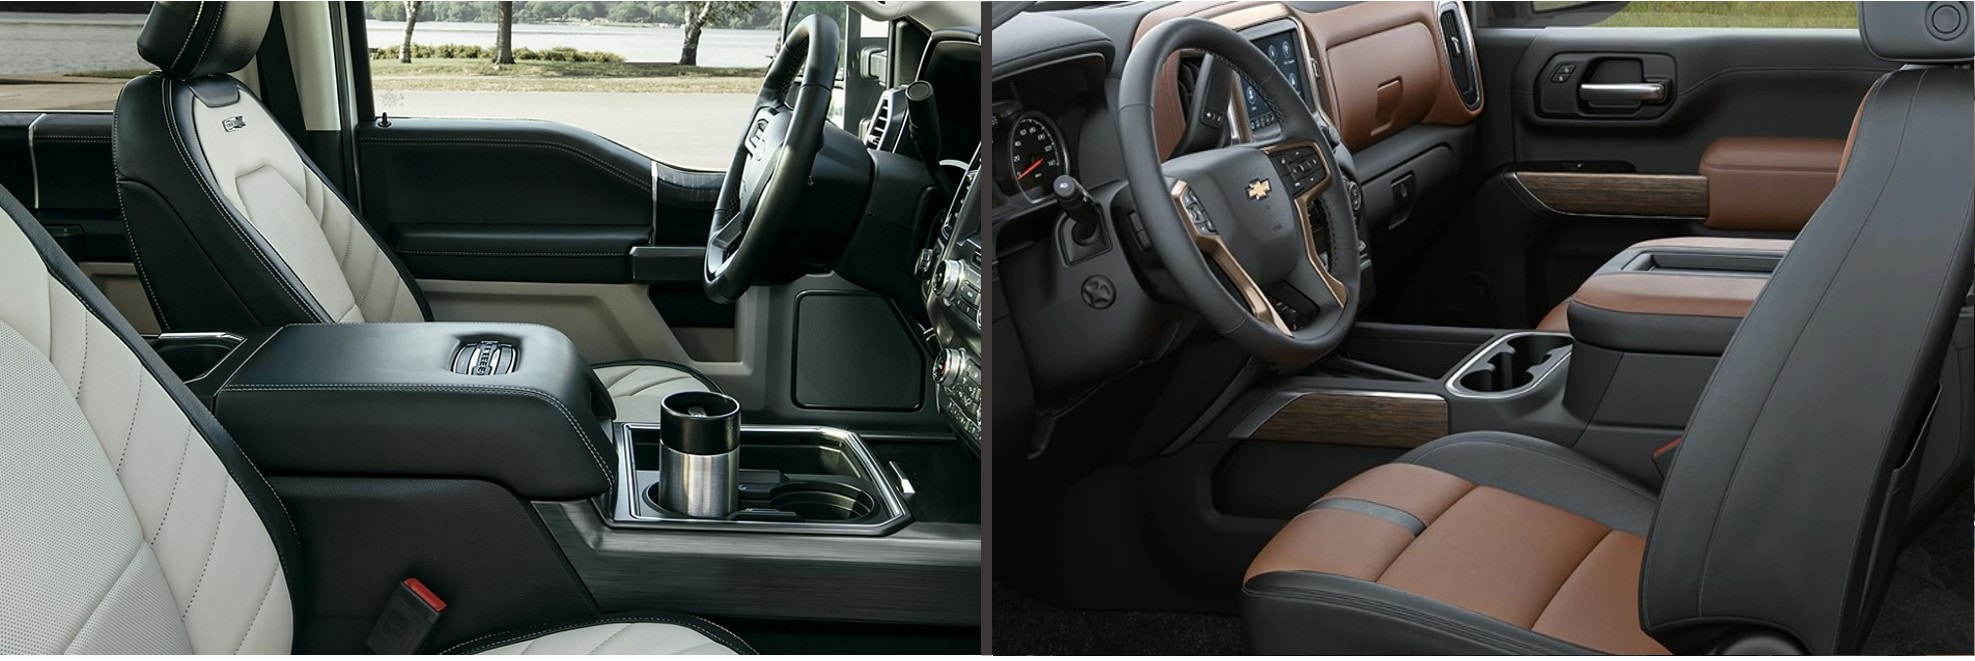 the interior seating and dashboard of a 2020 f-150 side by side to a Silverado 2500